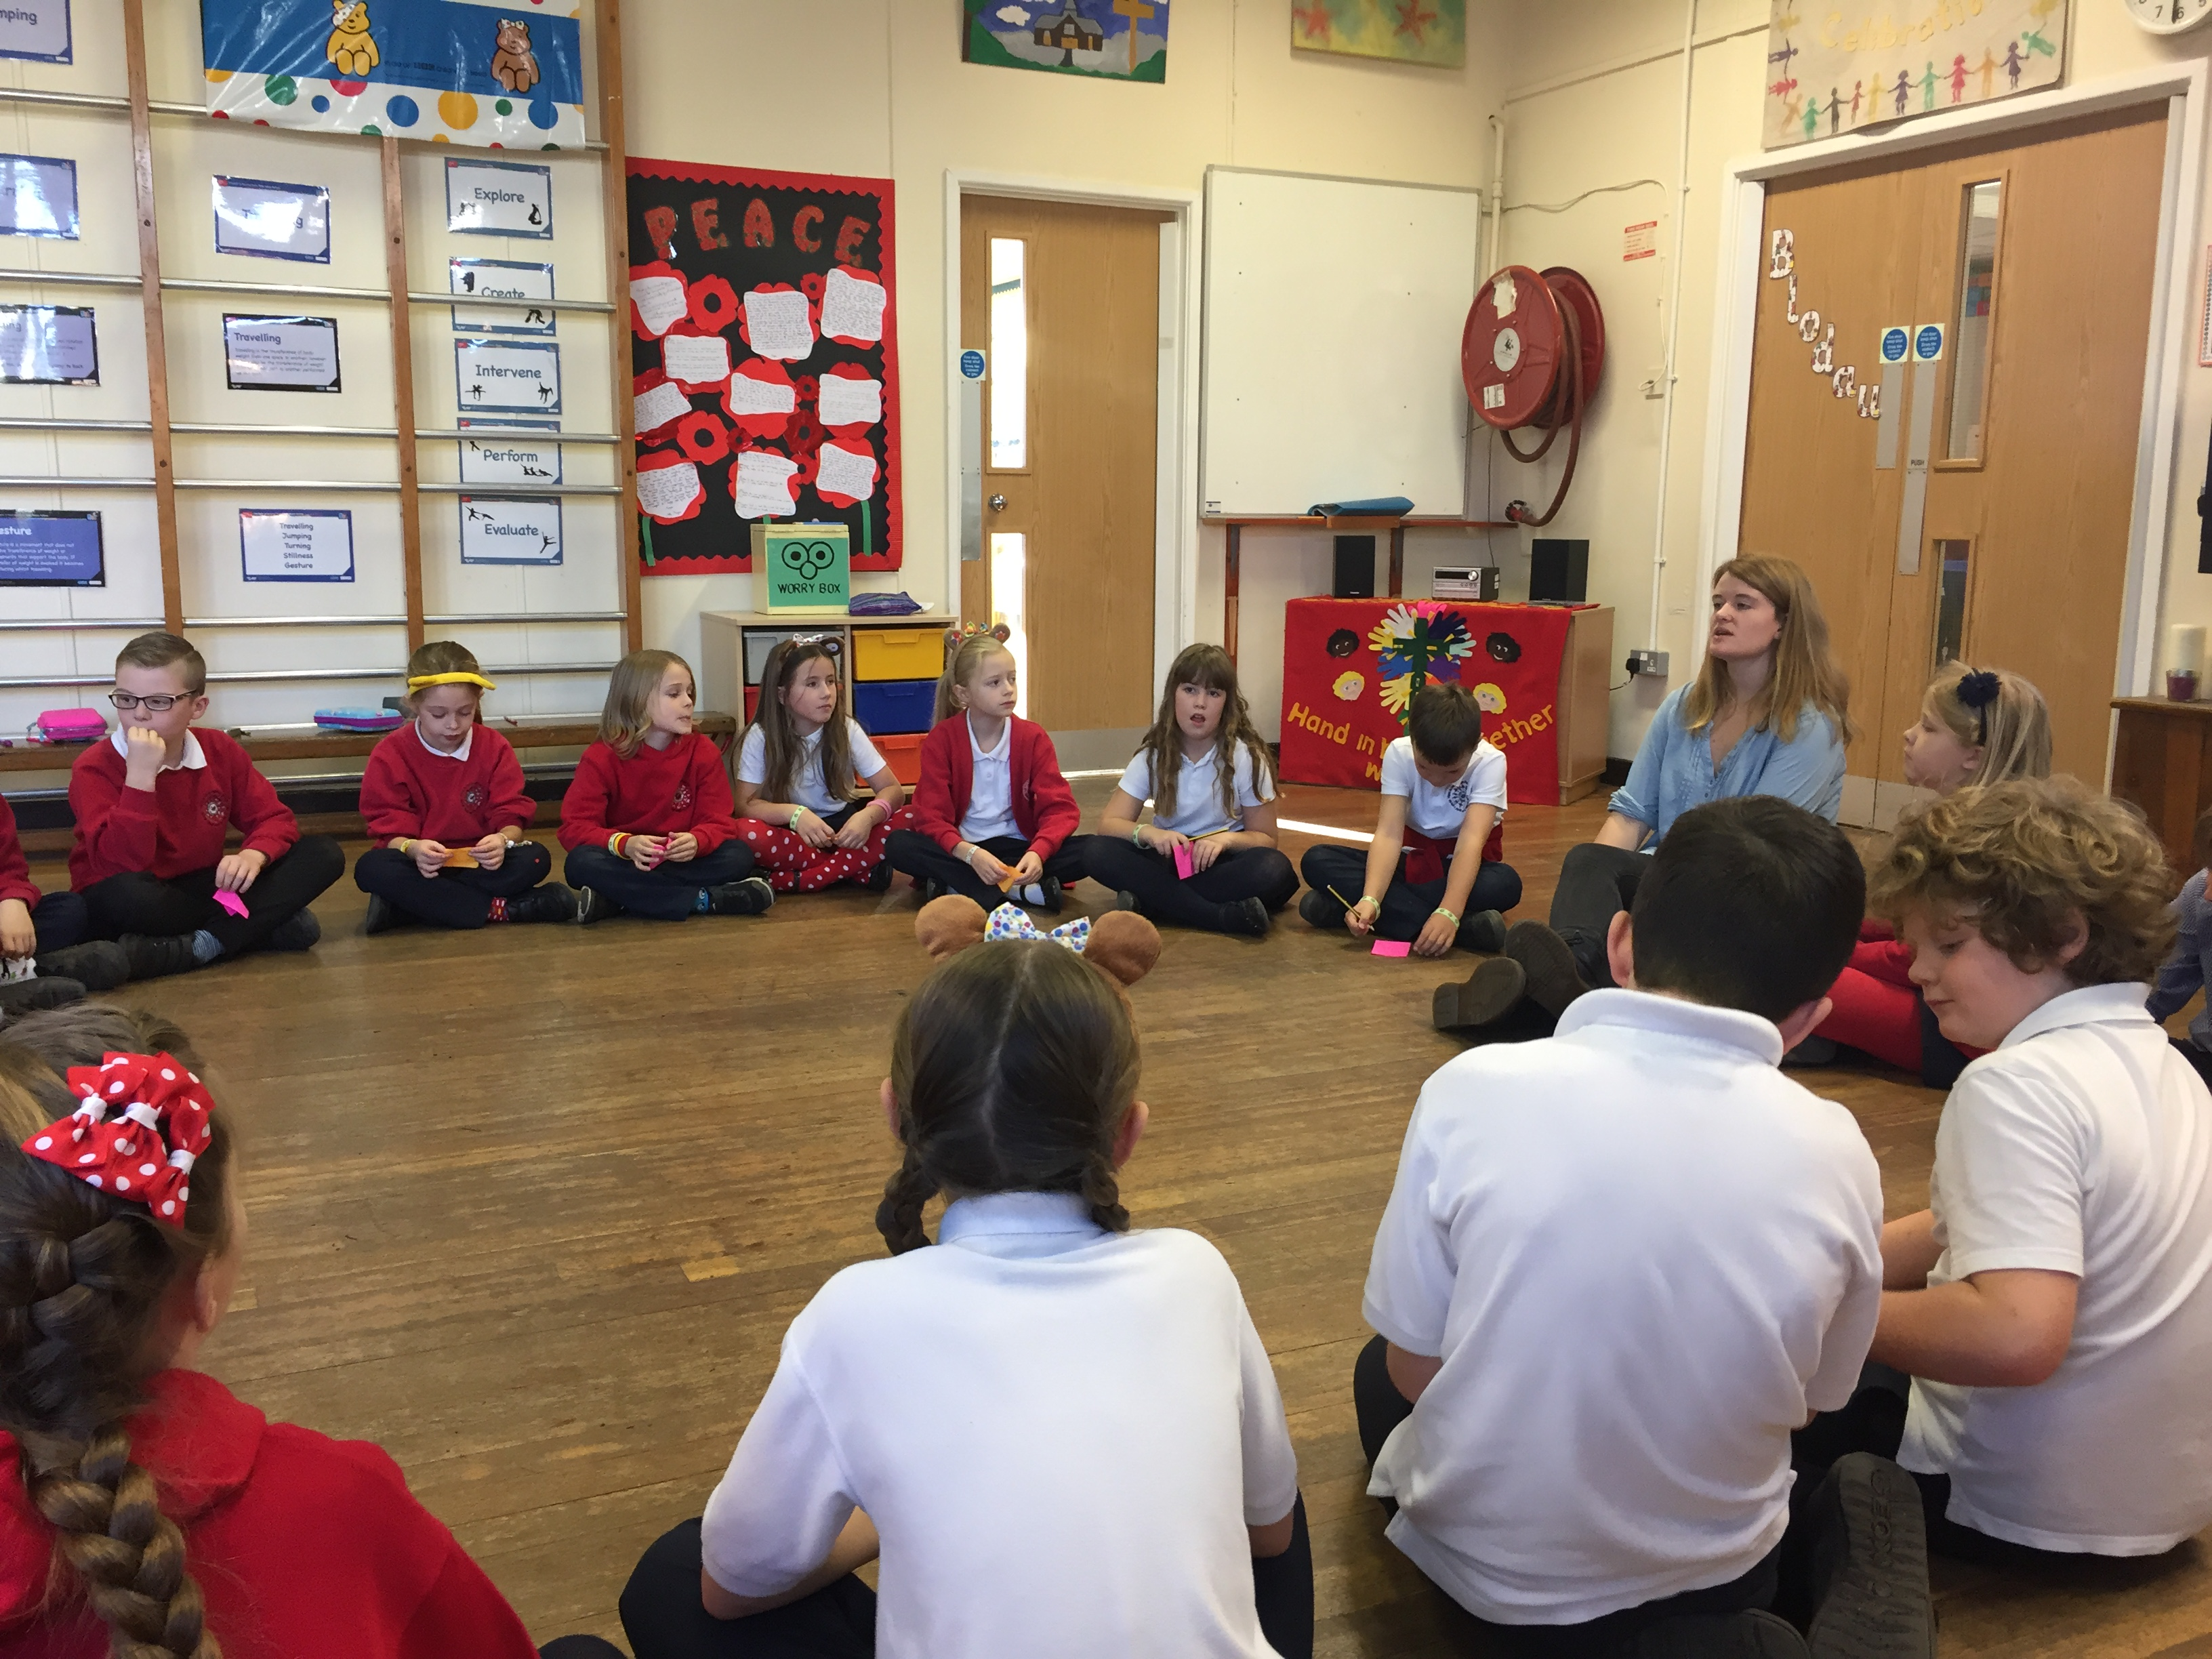 Working with Tamar the storyteller